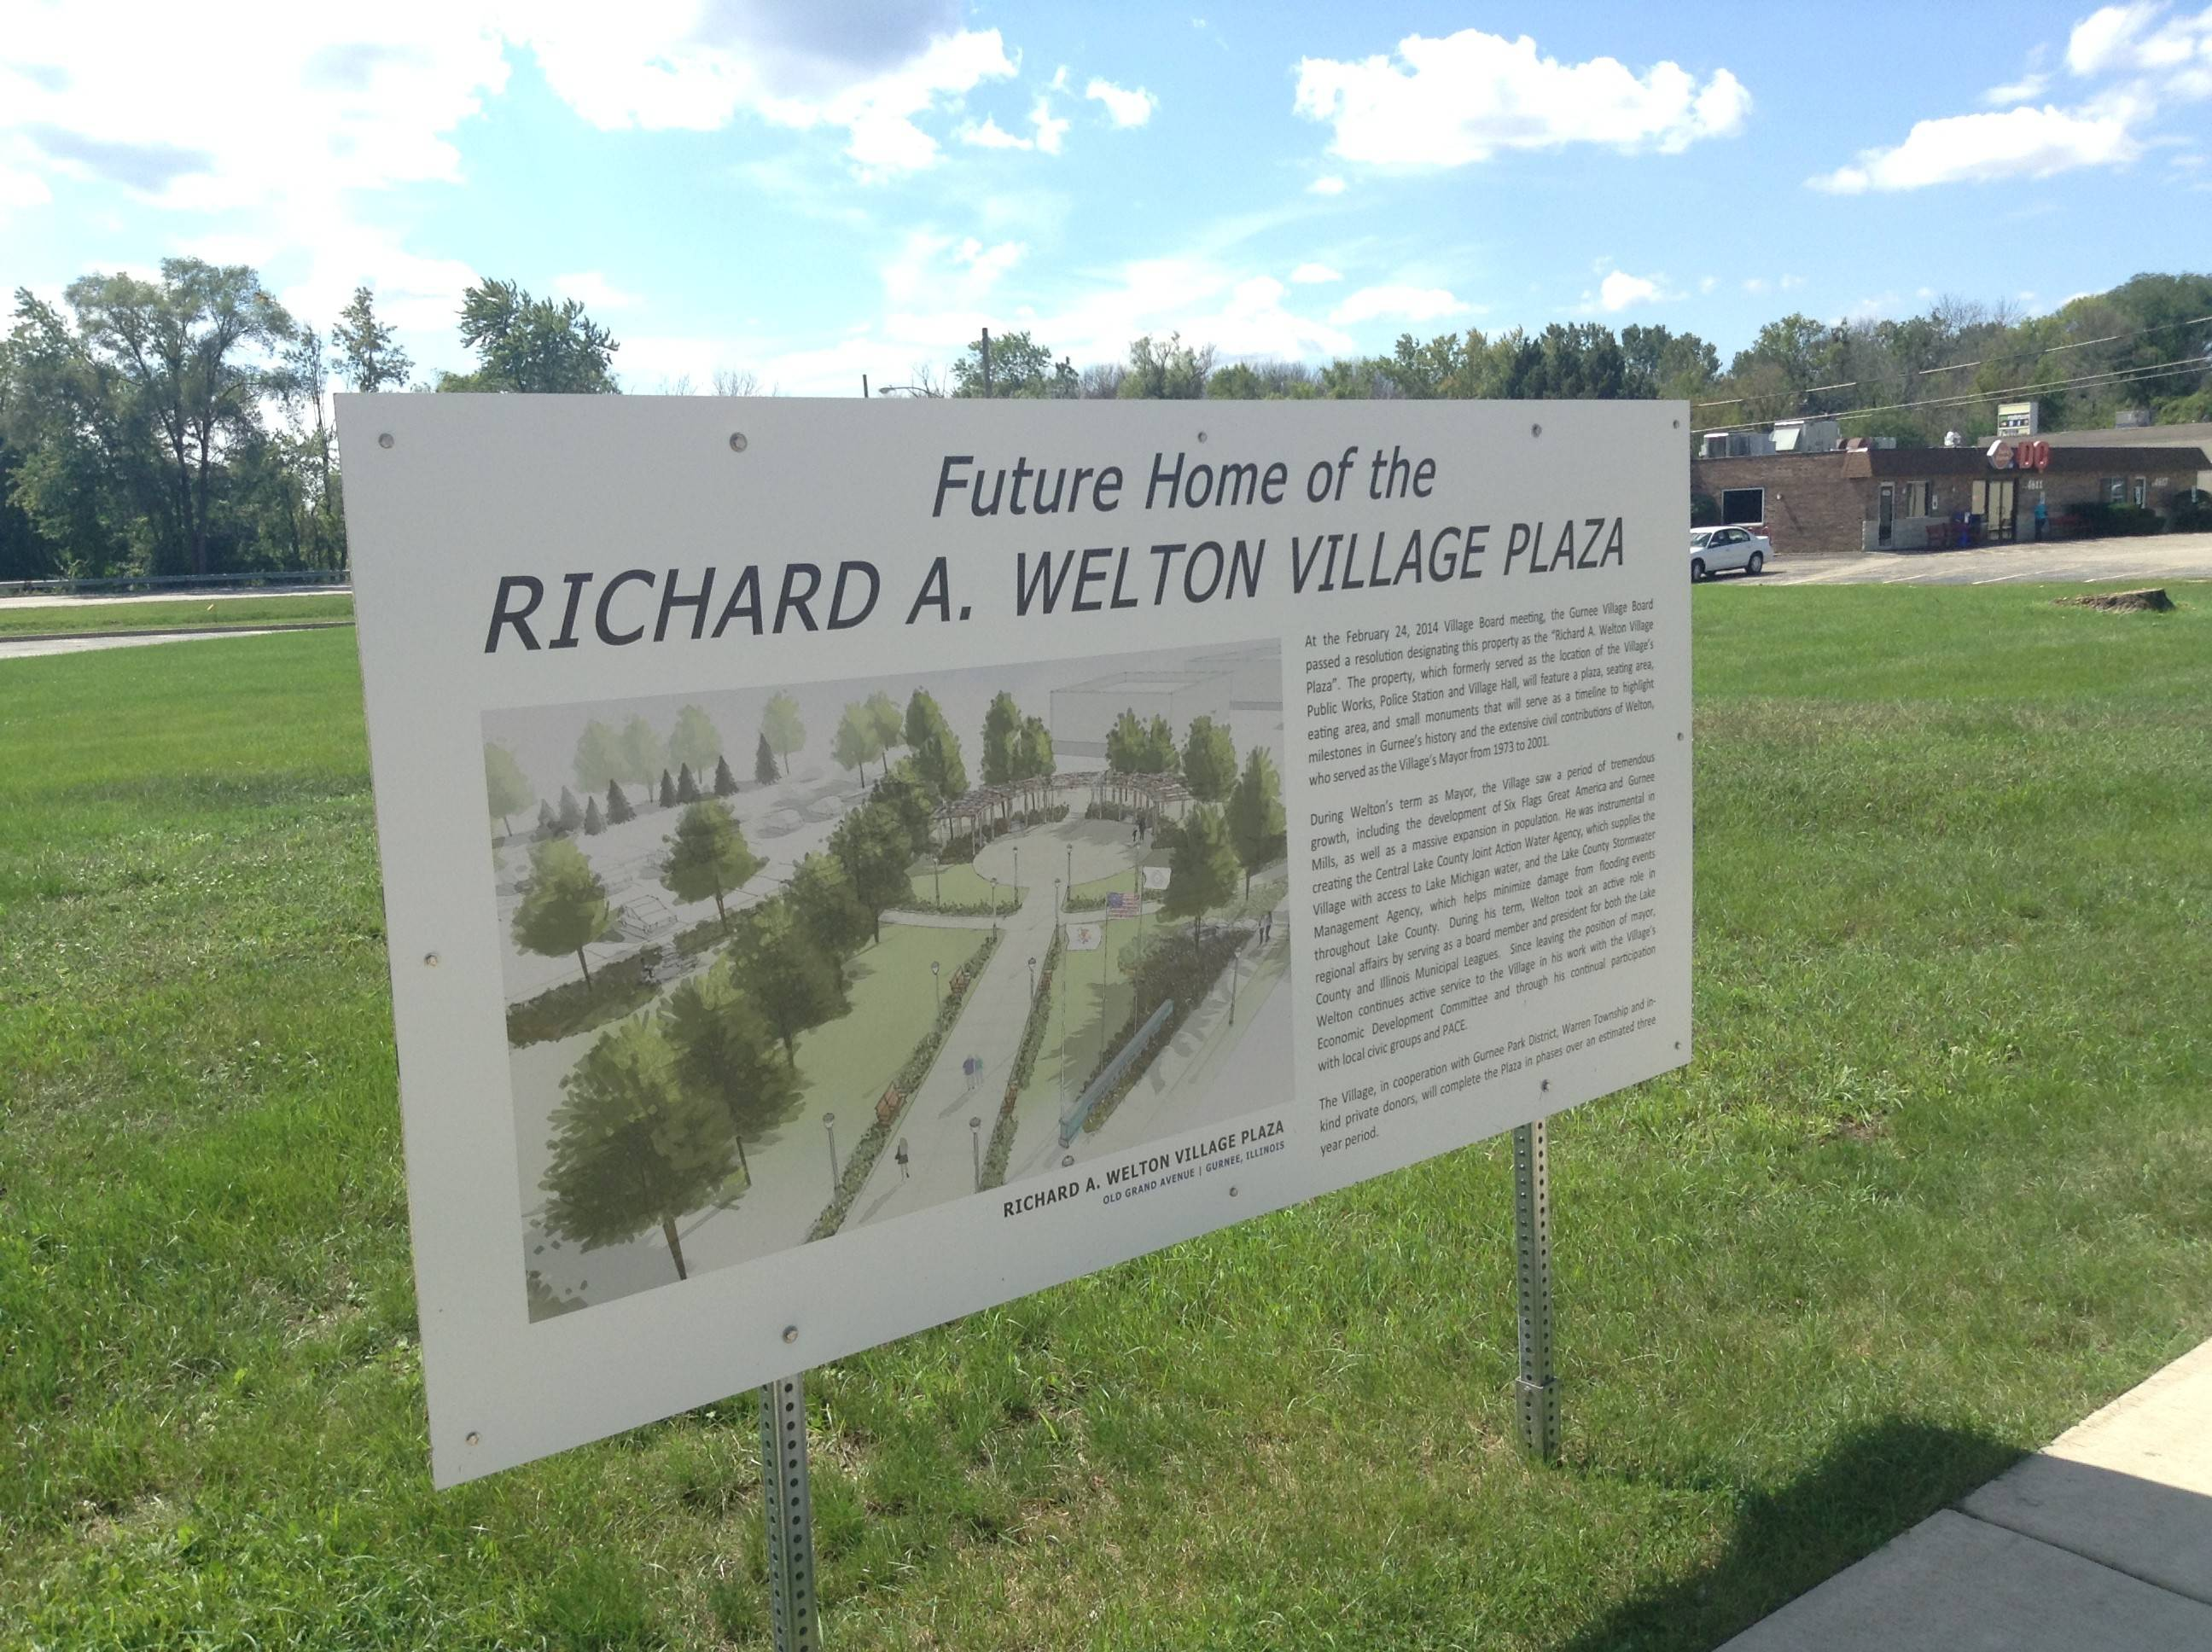 All are invited to a groundbreaking ceremony for Richard A. Welton Village Plaza at 11 a.m. Saturday on Old Grand Avenue in Gurnee. Welton had the village's longest tenure as mayor, from 1973 to 2001. The plaza will be on a 1-acre site owned by the village.